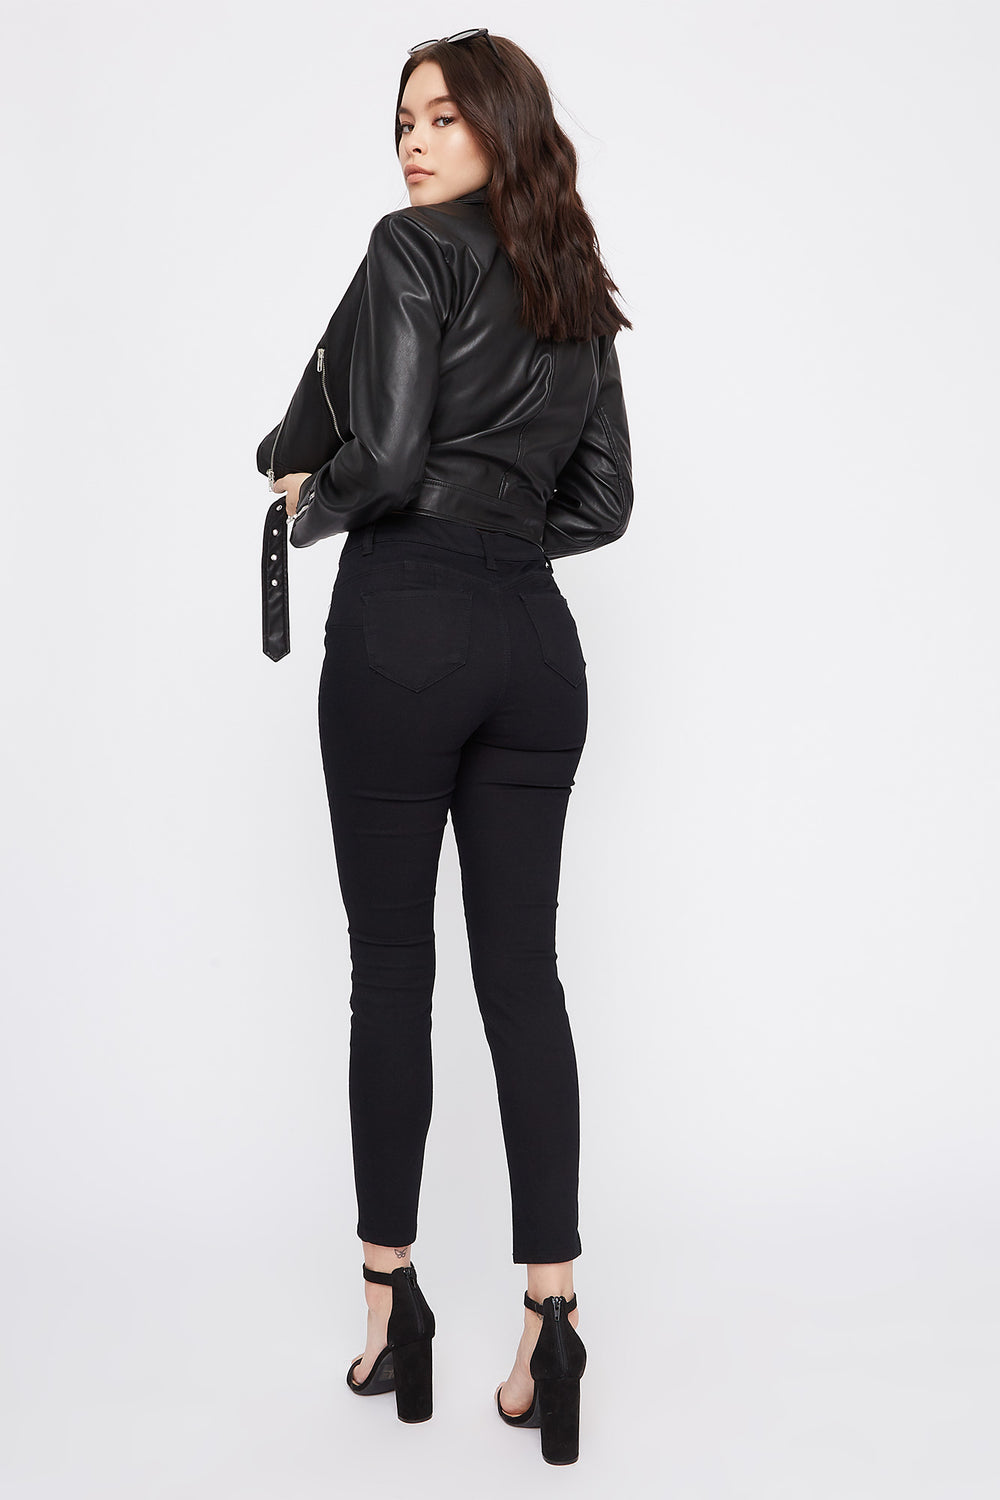 Butt, I Love You Solid High-Rise Push-Up Skinny Jean Black